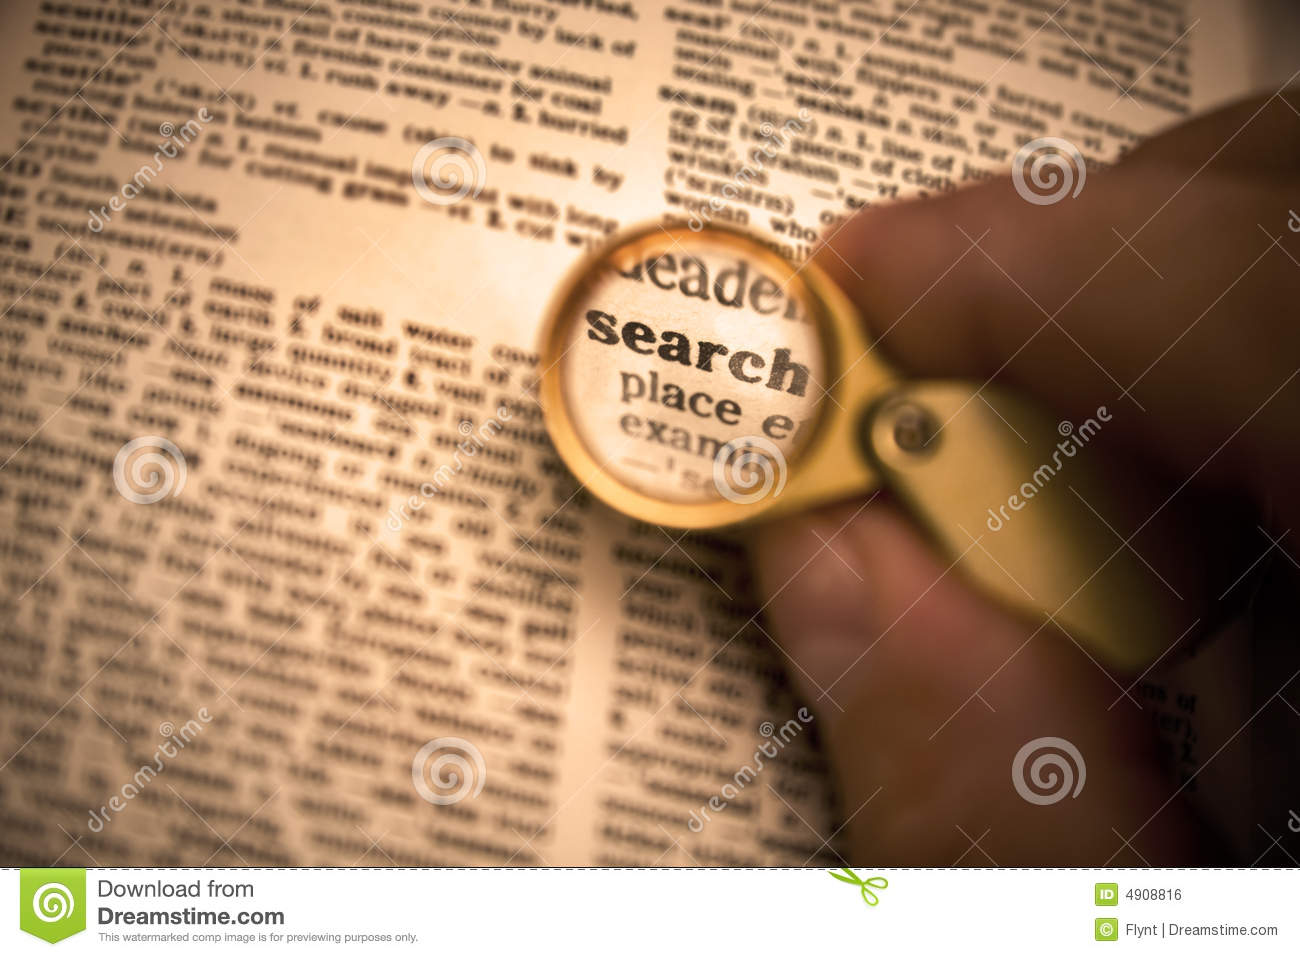 Search - definition of search by The Free Dictionary